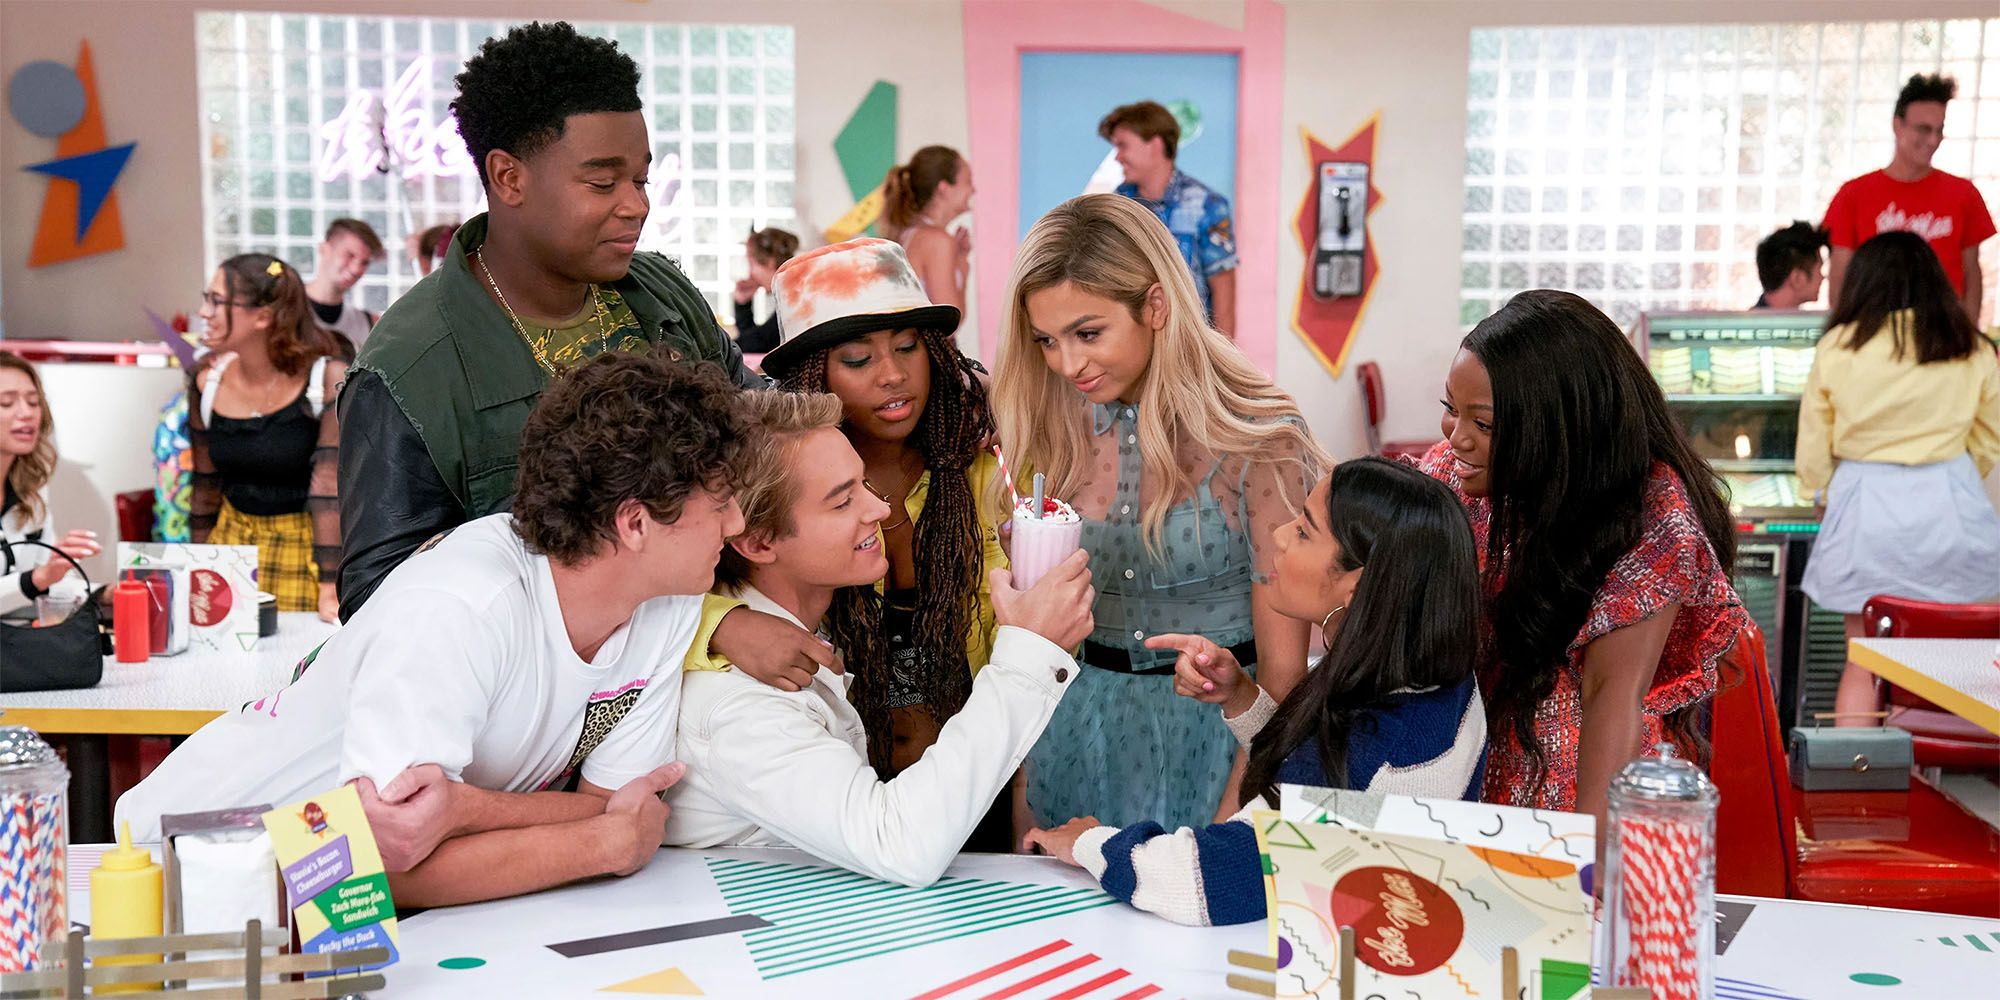 Saved By the Bell Reboot Is the Most-Viewed Peacock Original TV Show